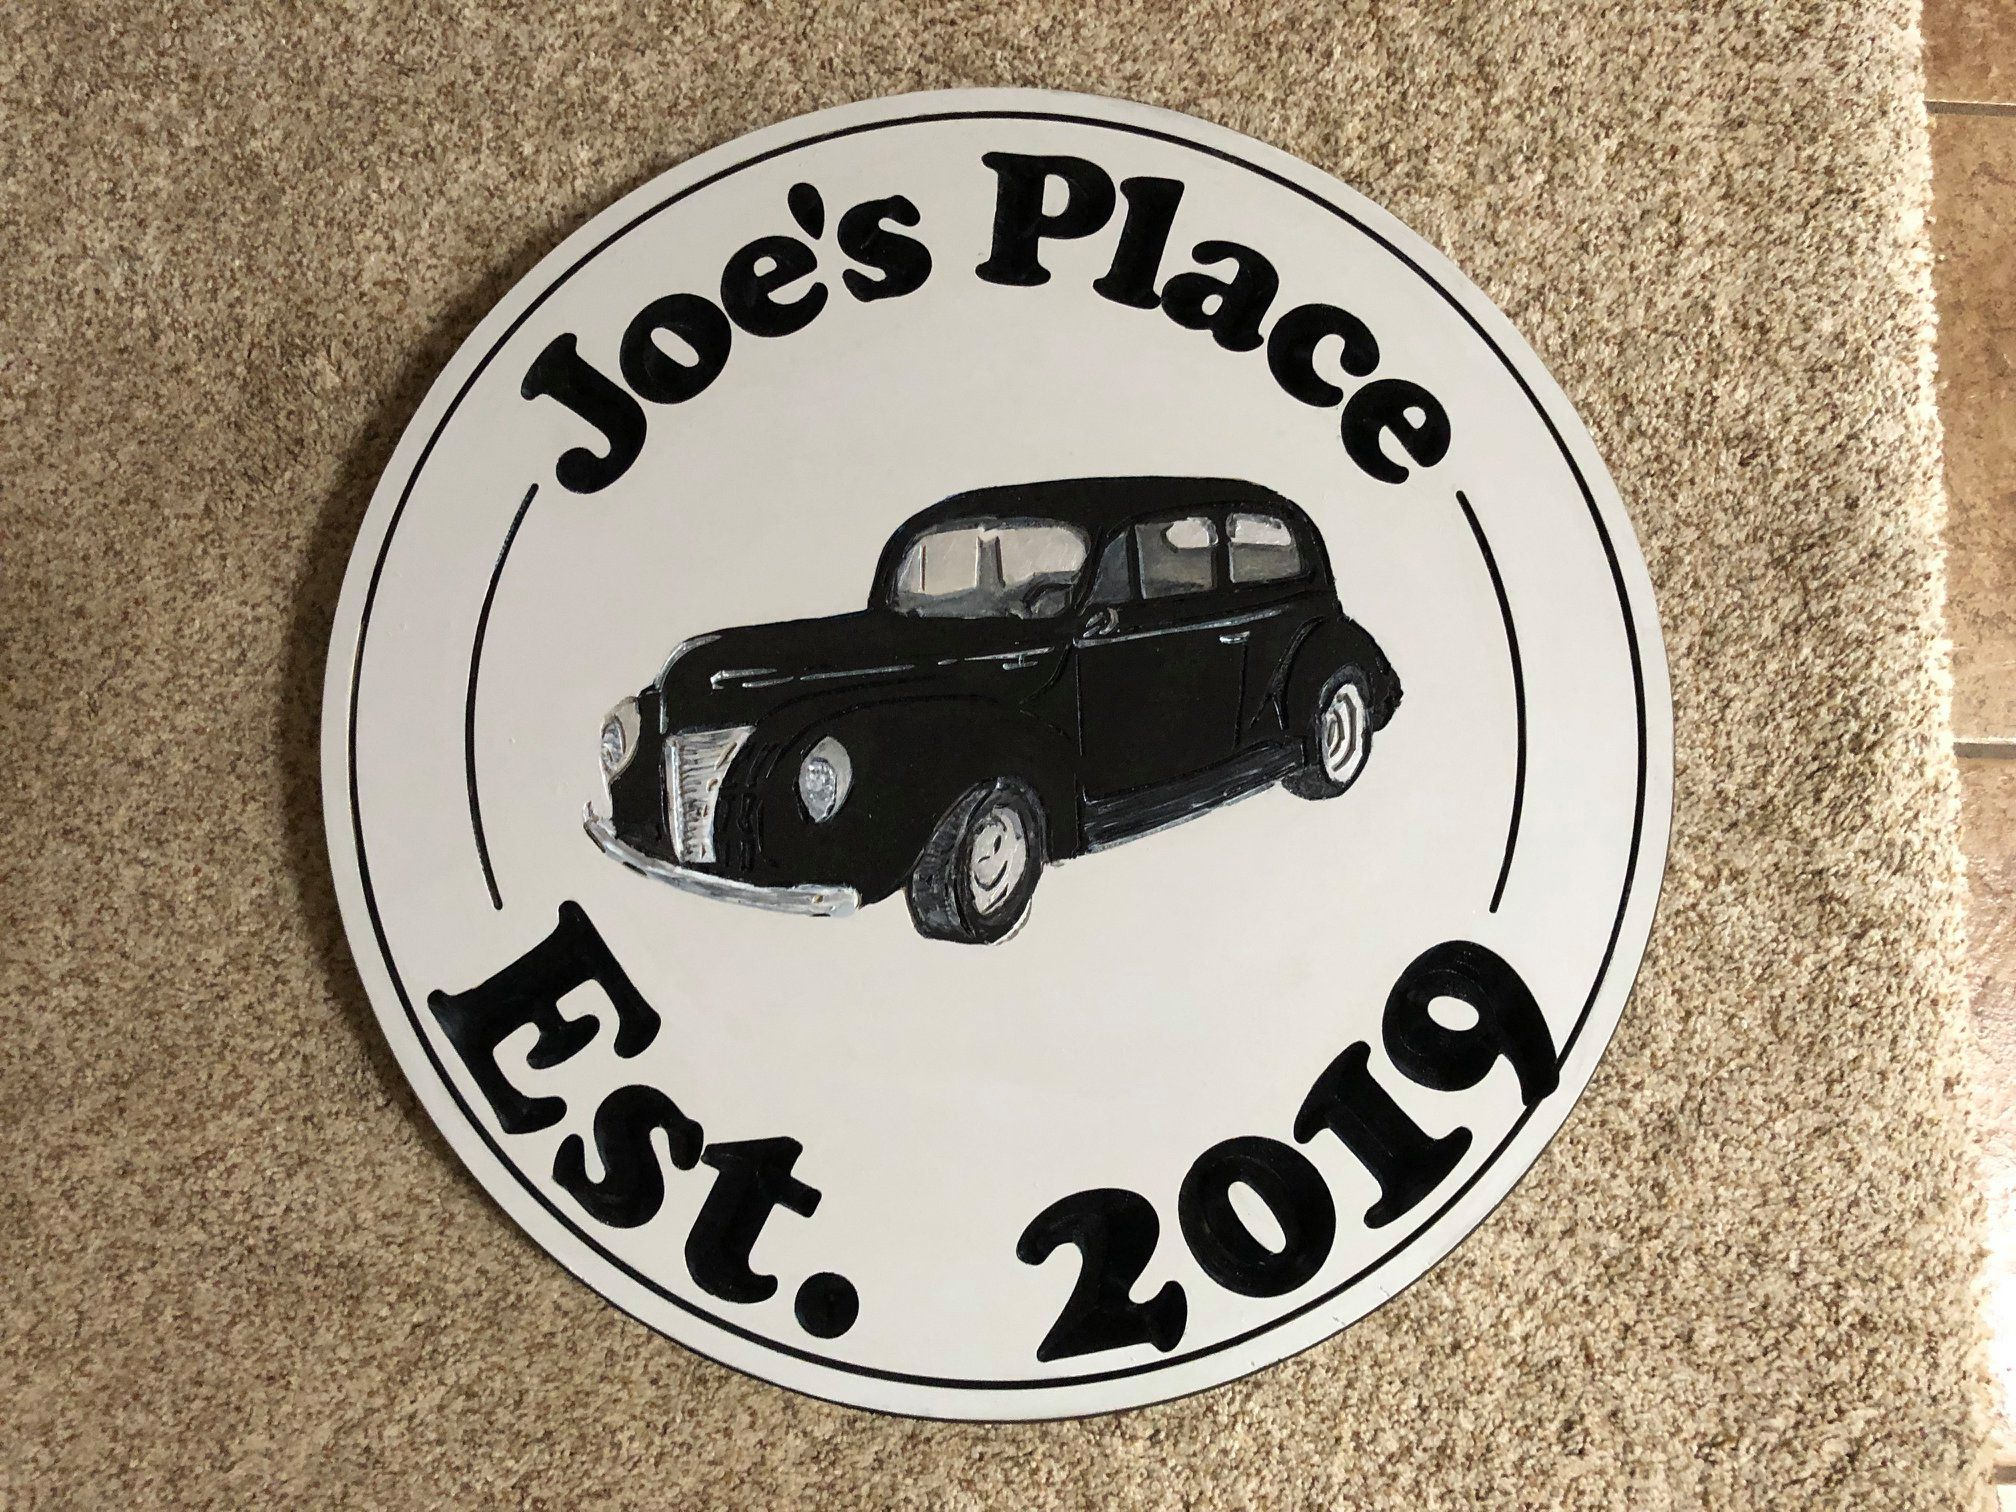 629  personalized wood sign with 40 Ford graphic